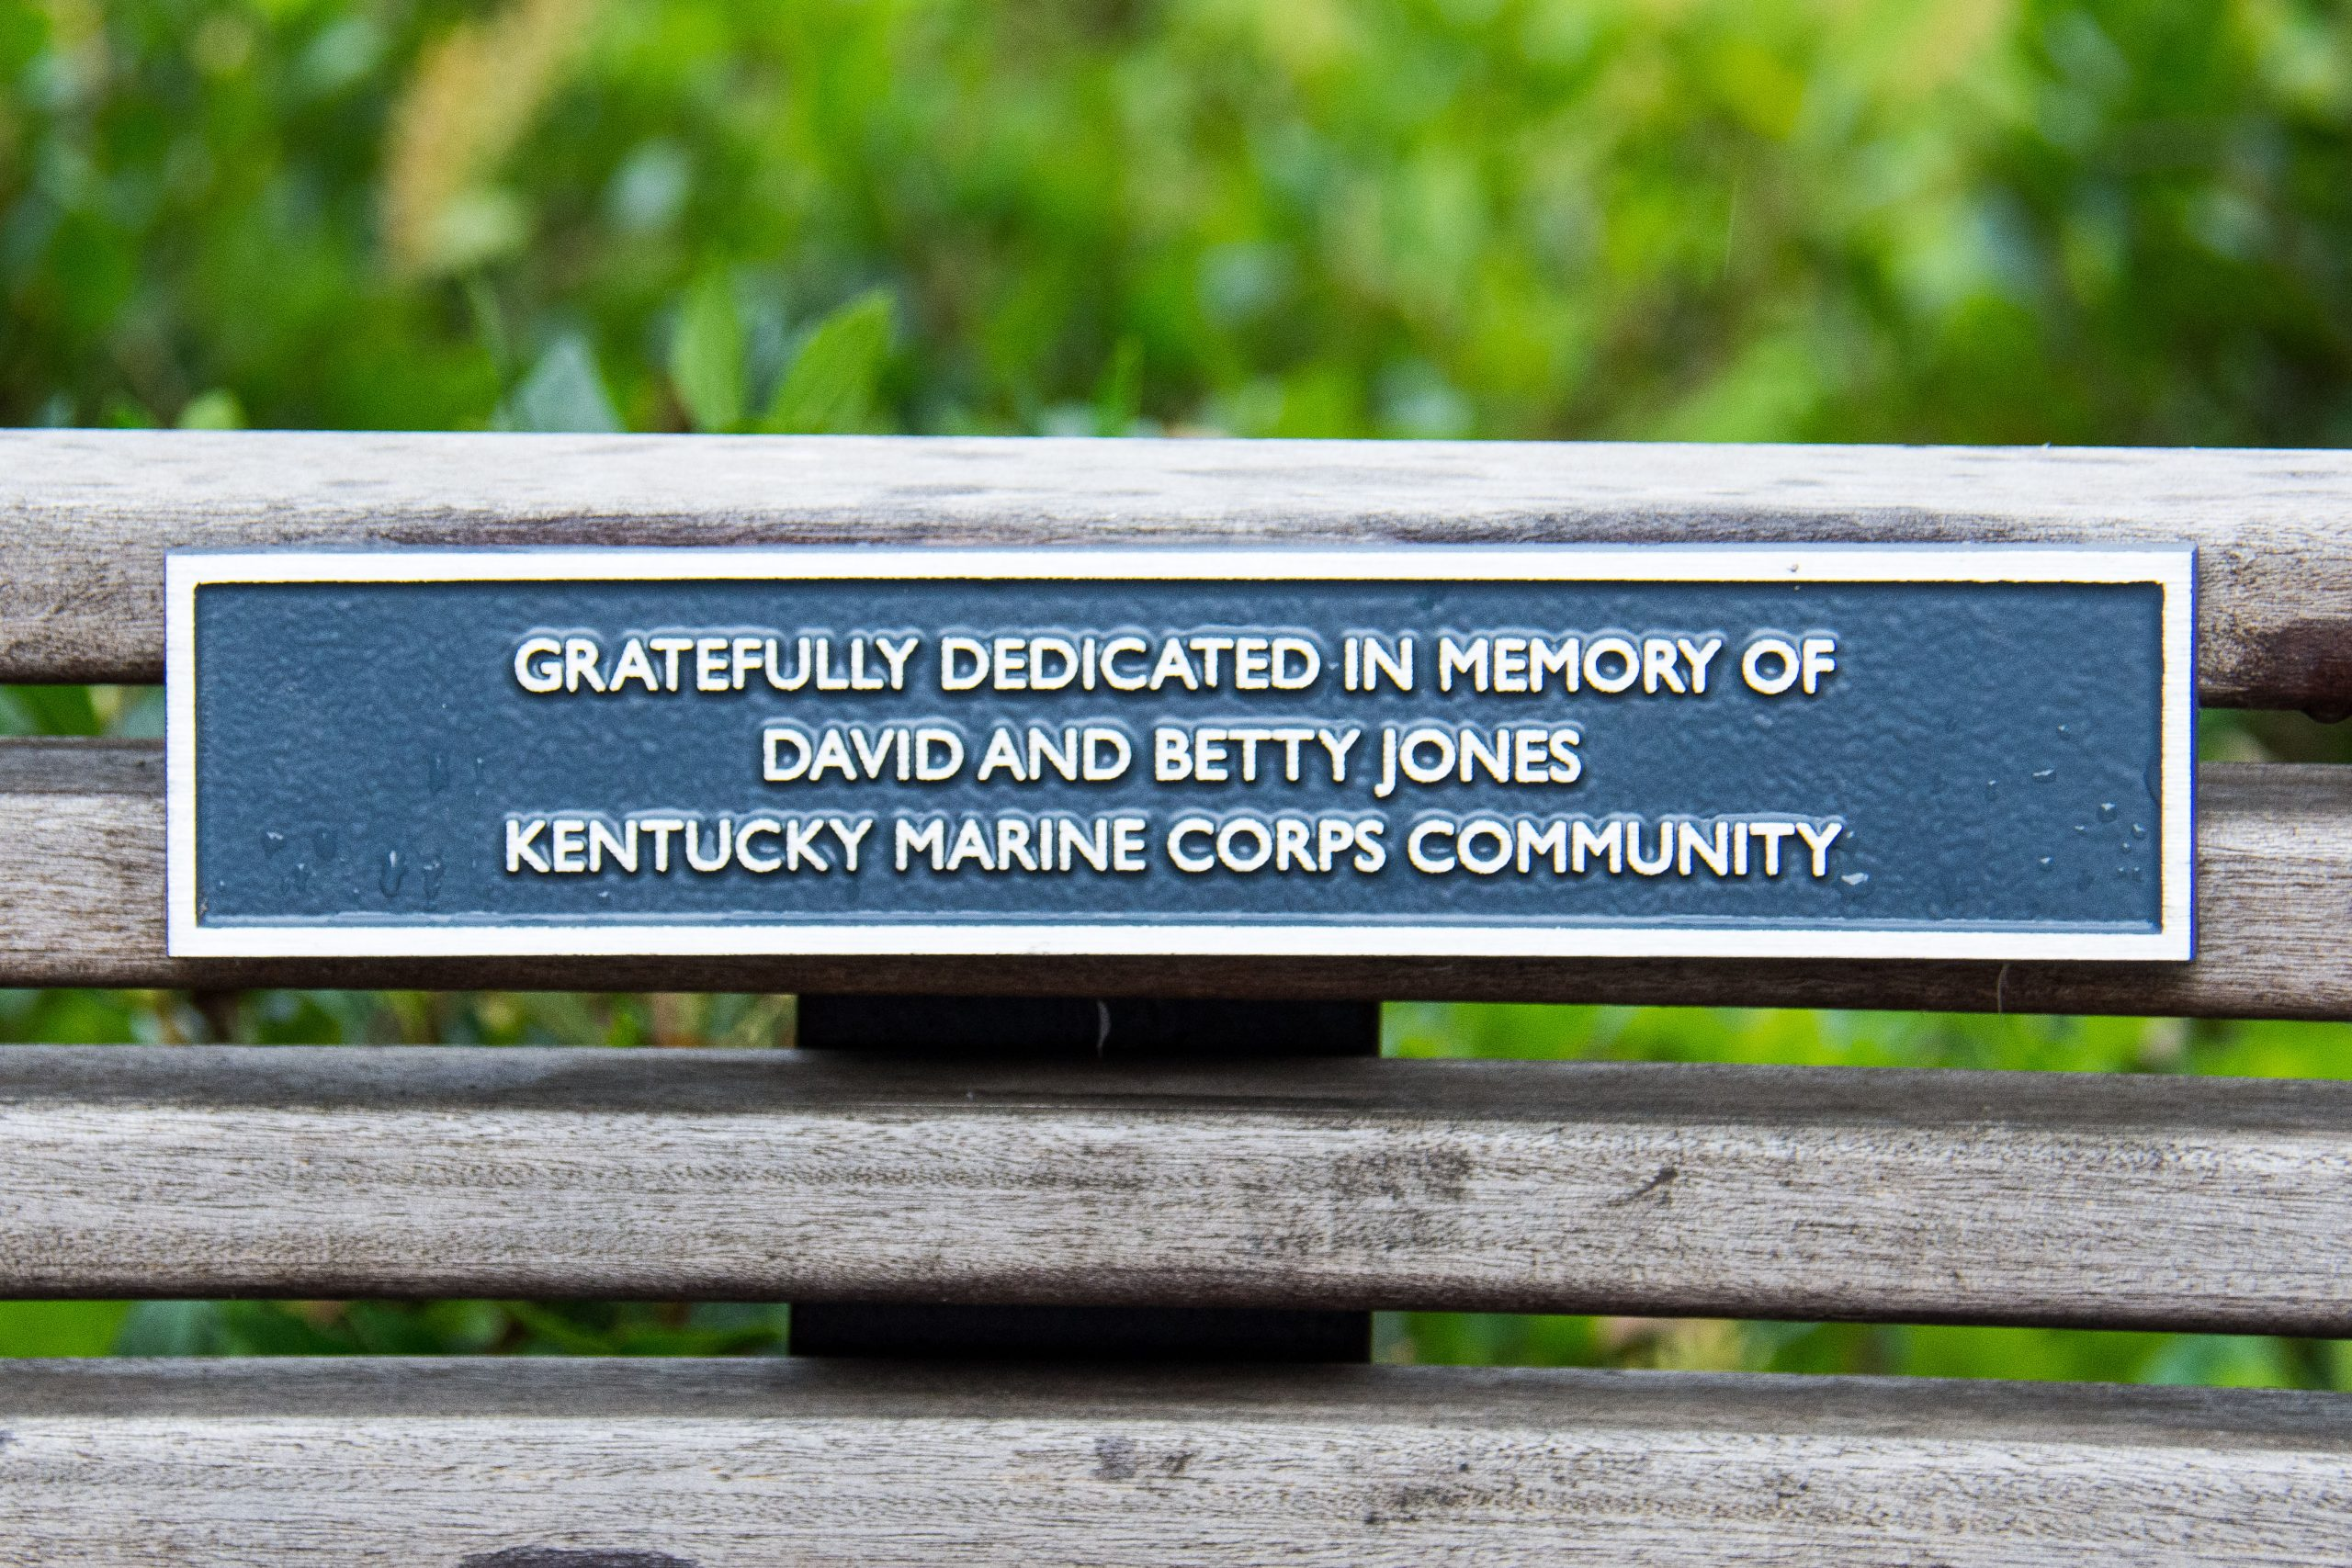 KENTUCKY MARINES DEDICATE DAVID AND BETTY JONES MEMORIAL BENCH AT PARKLANDS